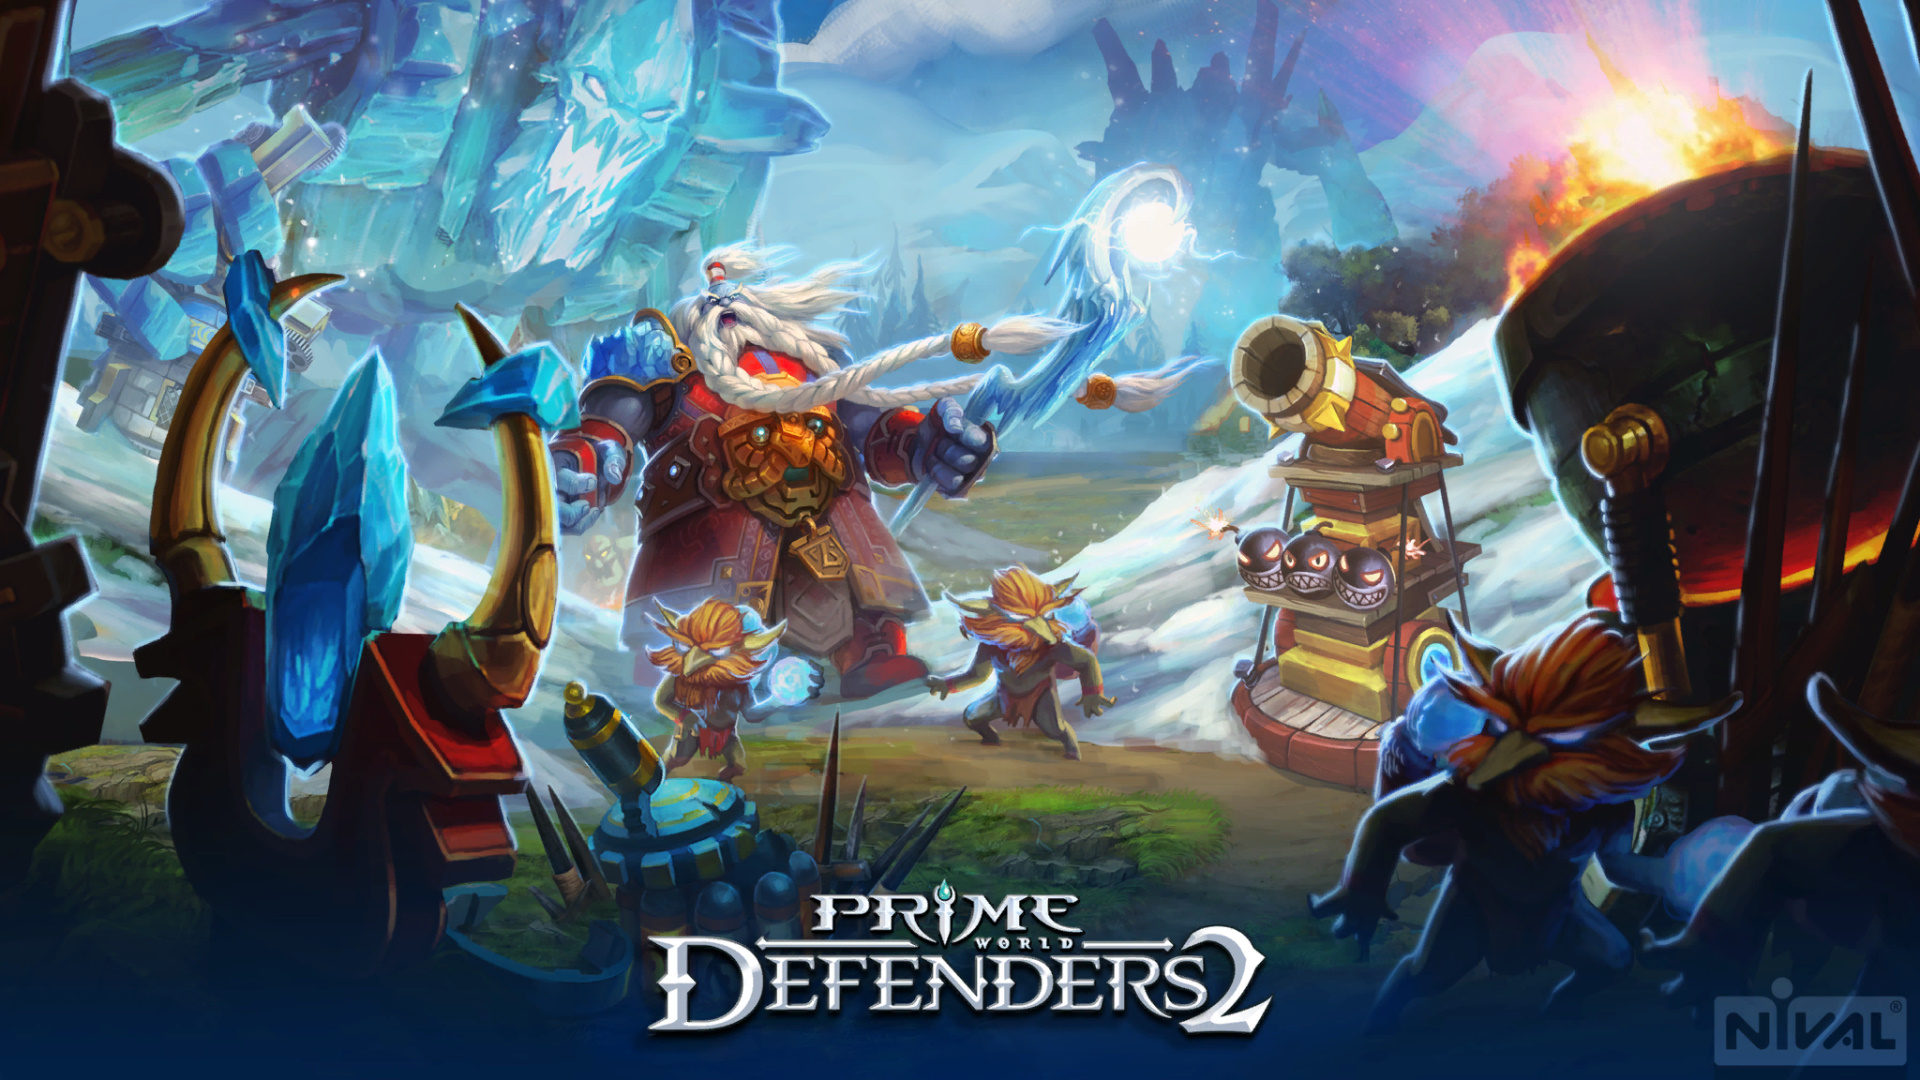 Steam Community :: Guide :: Everything about Prime World Defenders 2